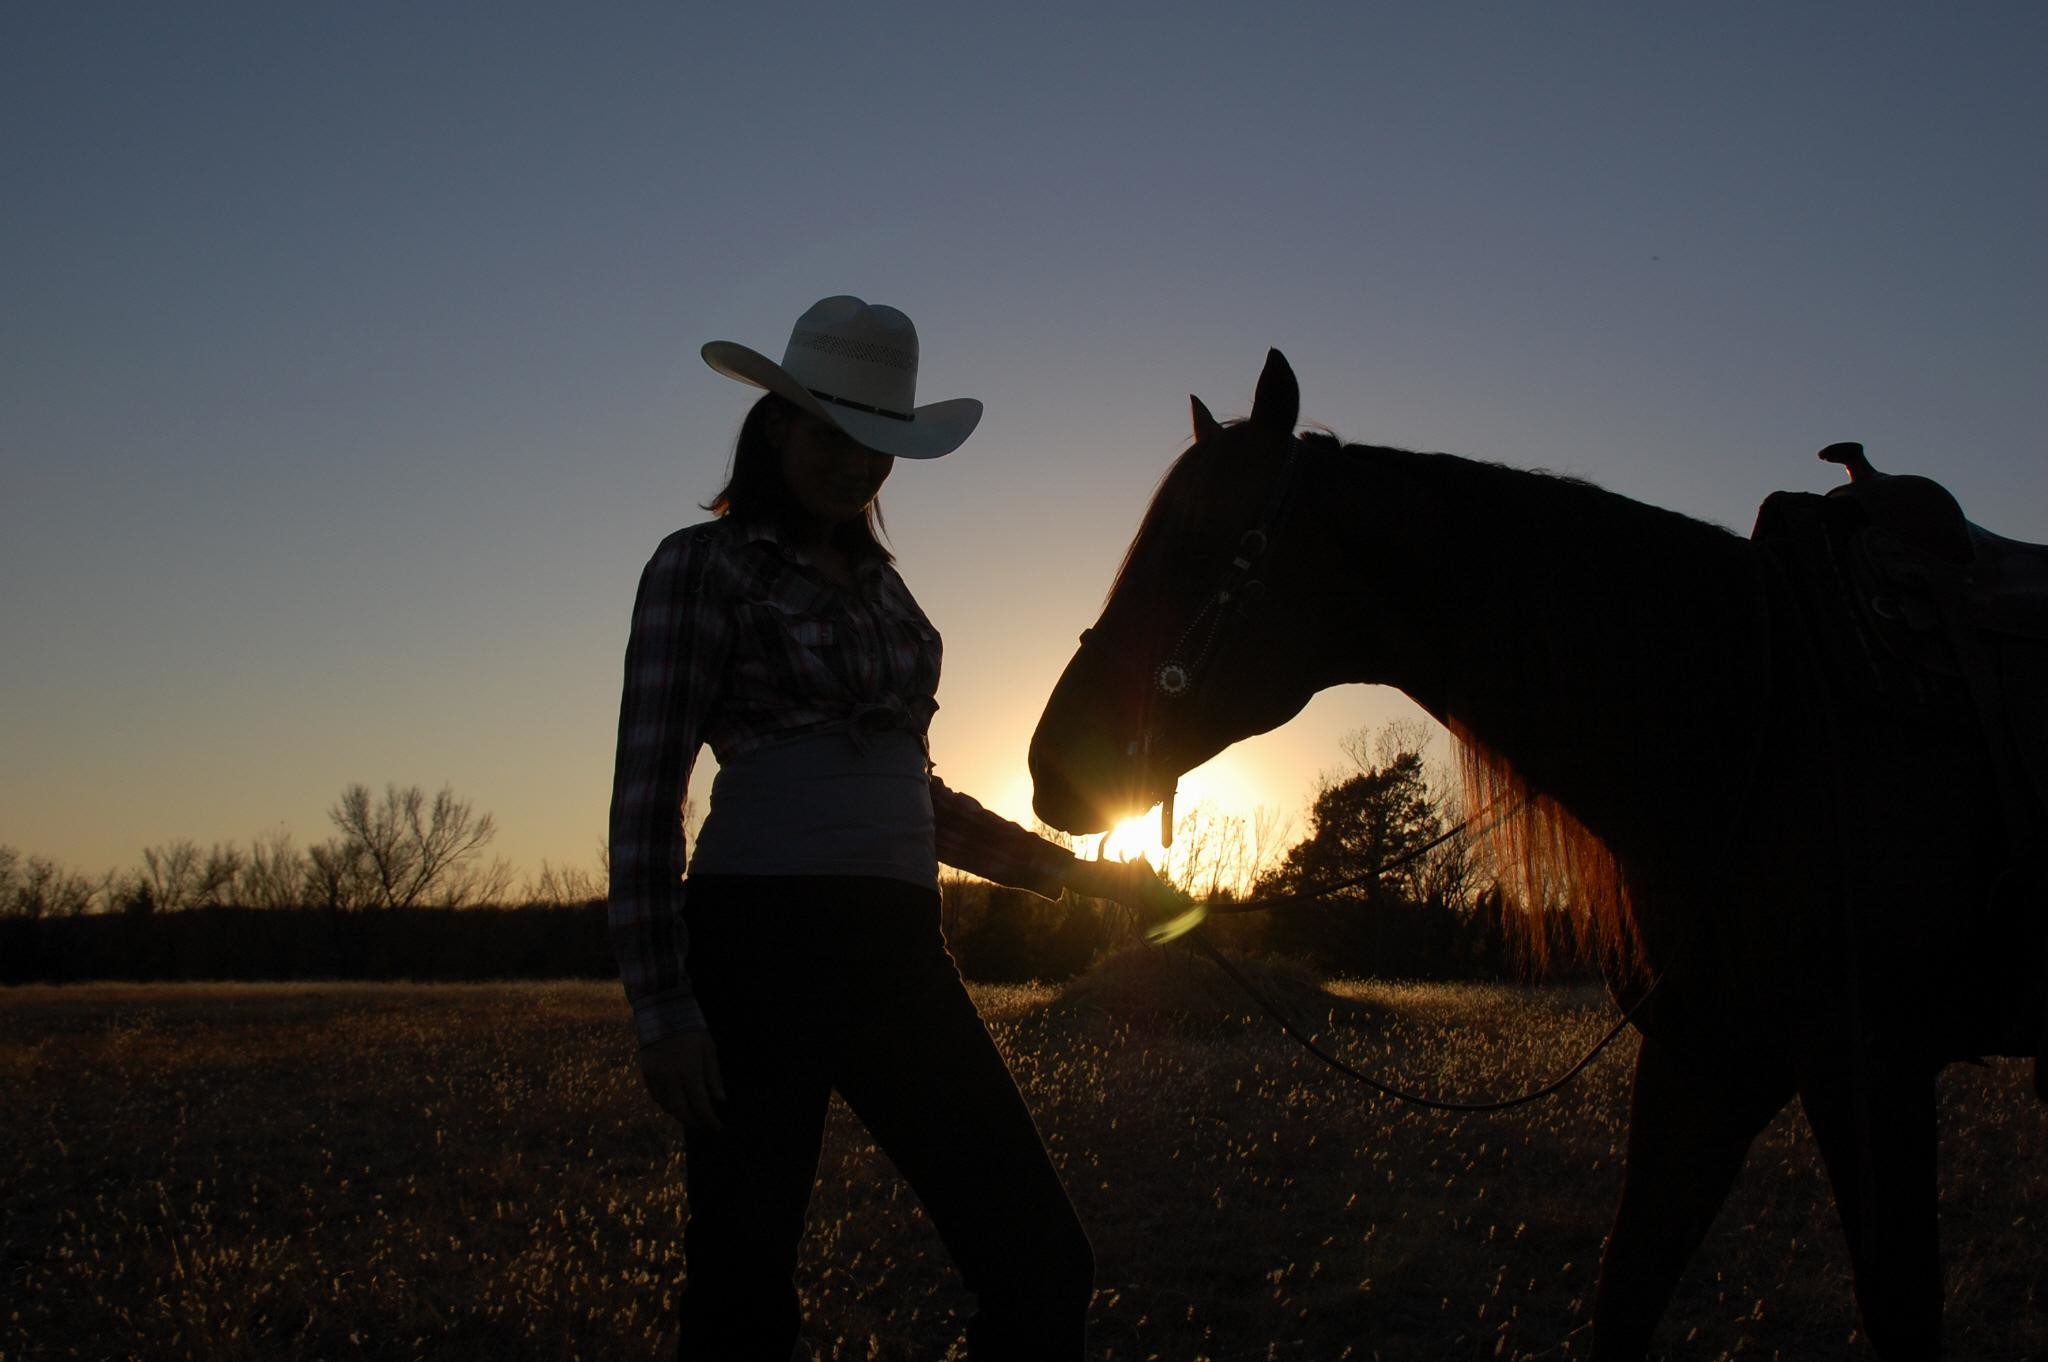 wallpaper.wiki-Country-girl-boots-cowgirl-horse-images-